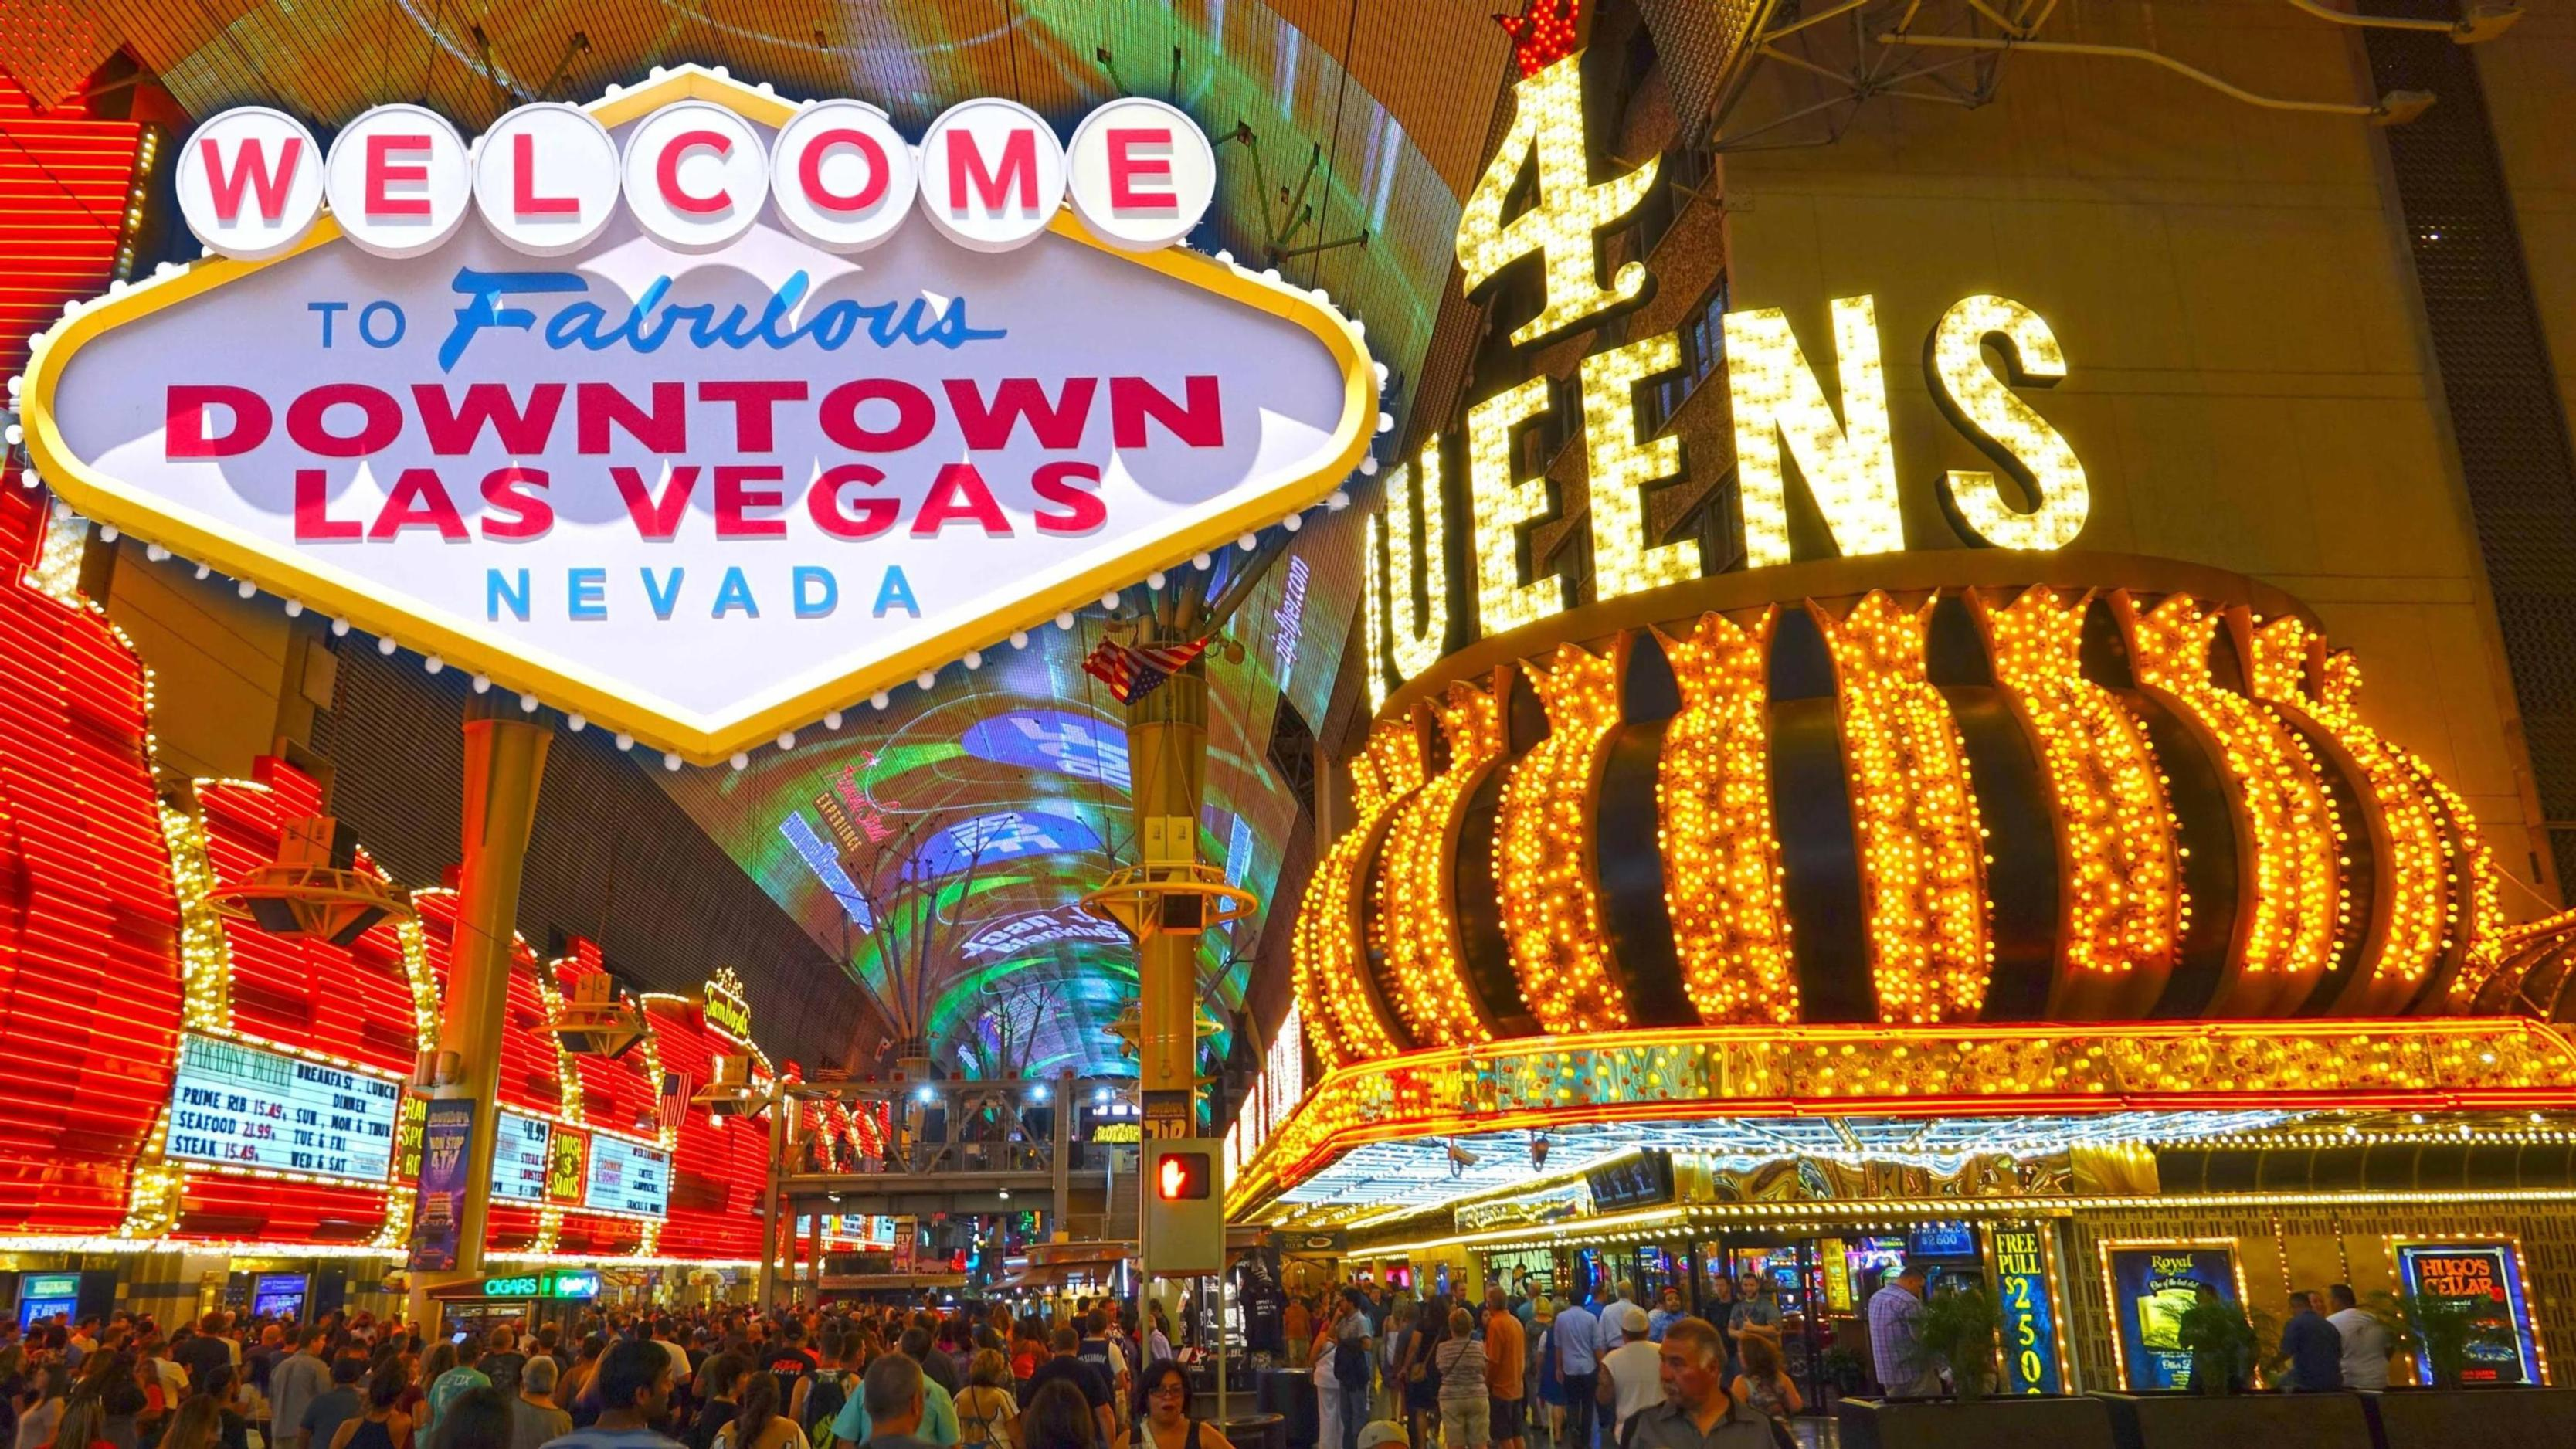 Join us in historic Downtown Las Vegas